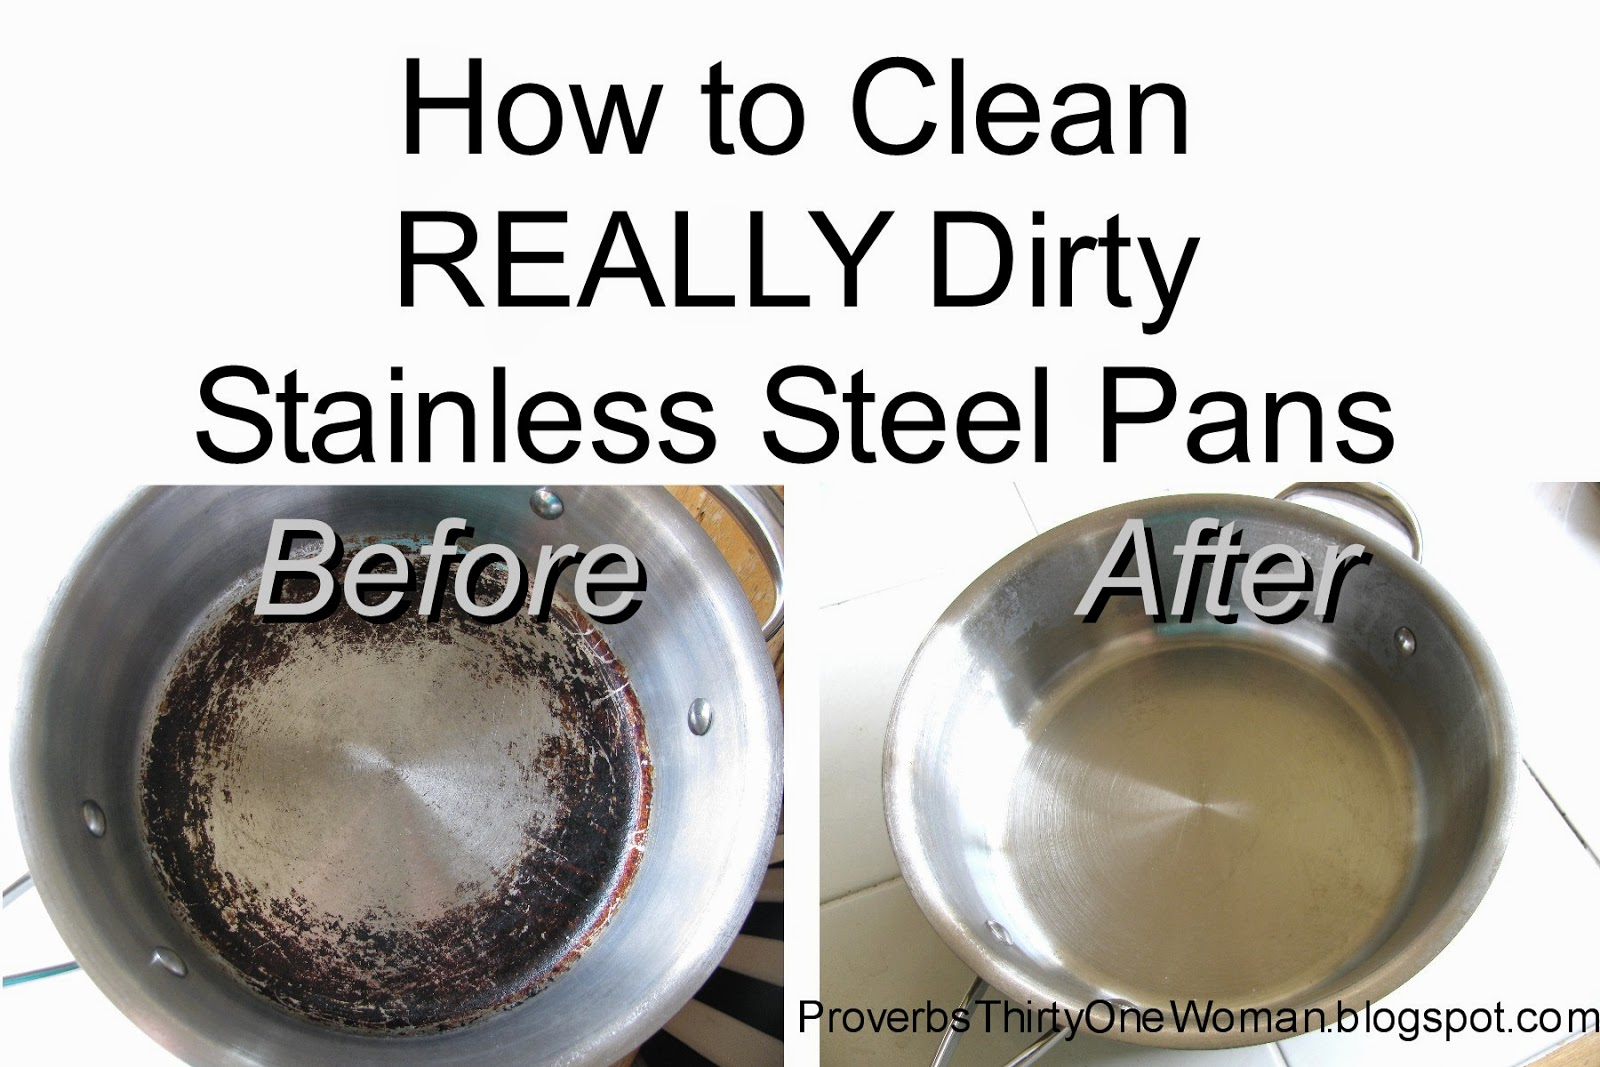 How To Clean Really Dirty Stainless Steel Pots And Pans